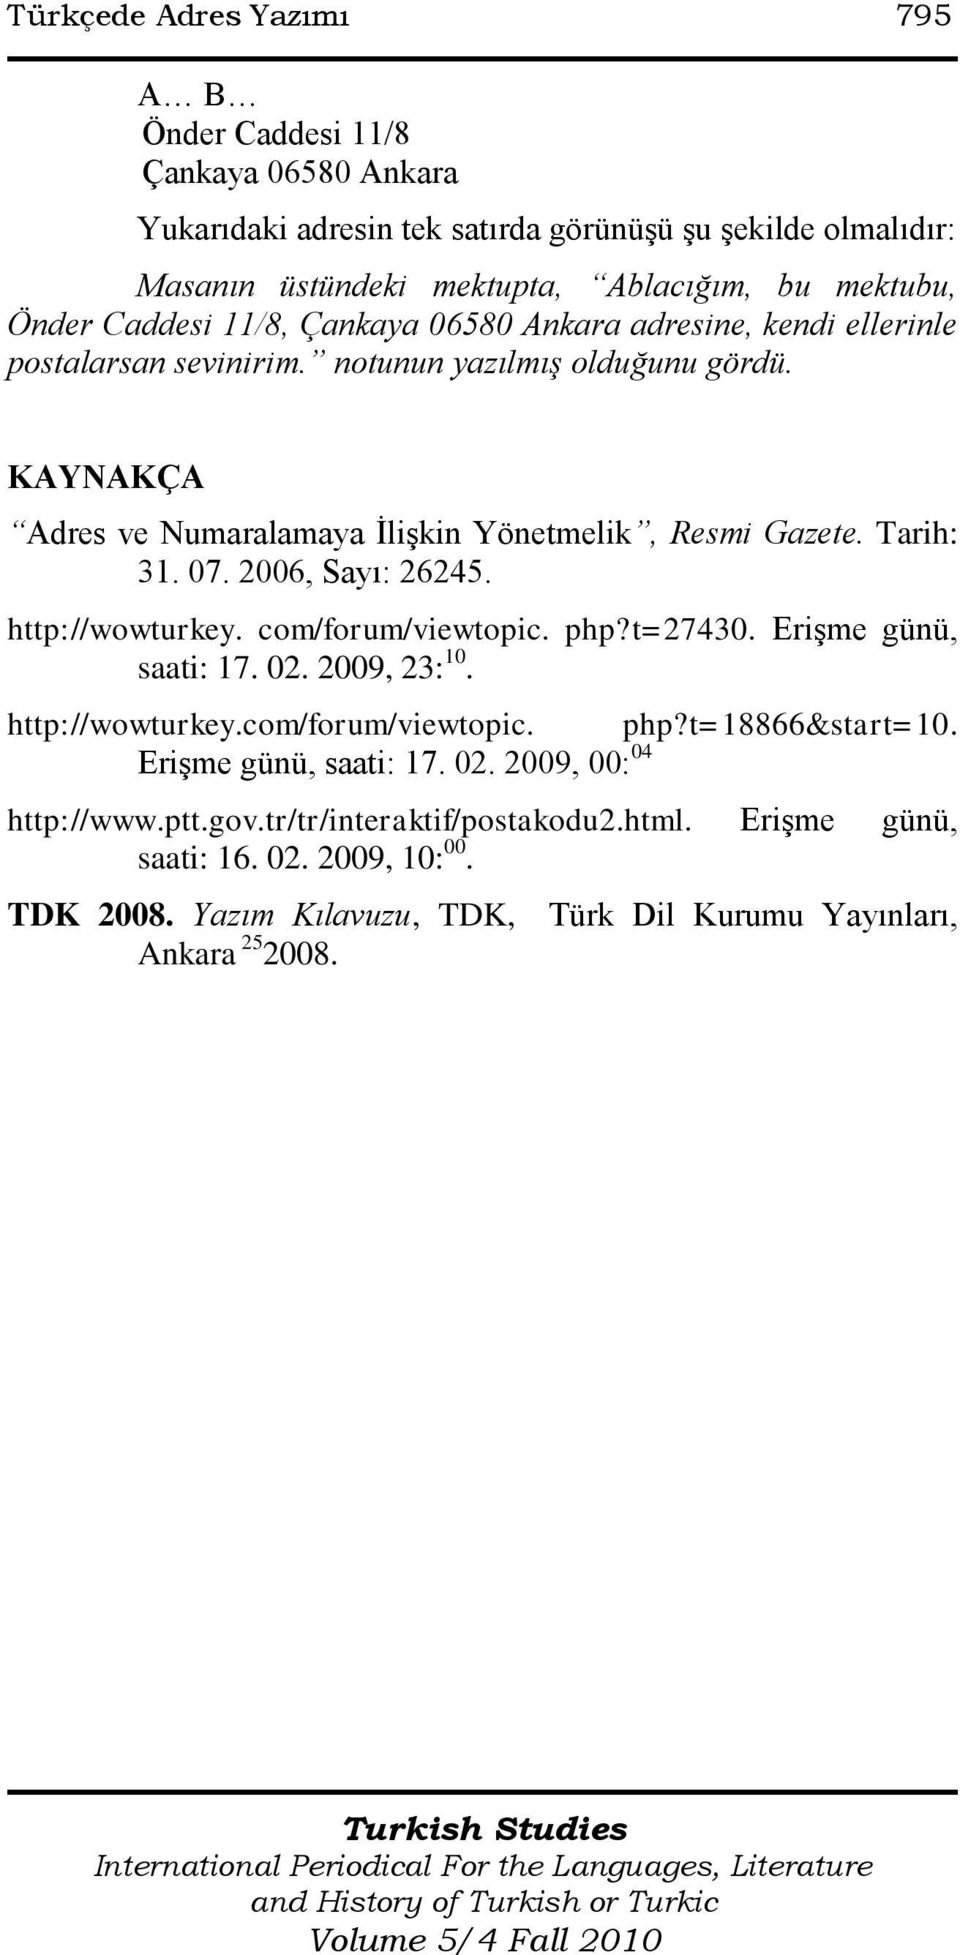 07. 2006, Sayı: 26245. http://wowturkey. com/forum/viewtopic. php?t=27430. EriĢme günü, saati: 17. 02. 2009, 23: 10. http://wowturkey.com/forum/viewtopic. php?t=18866&start=10.